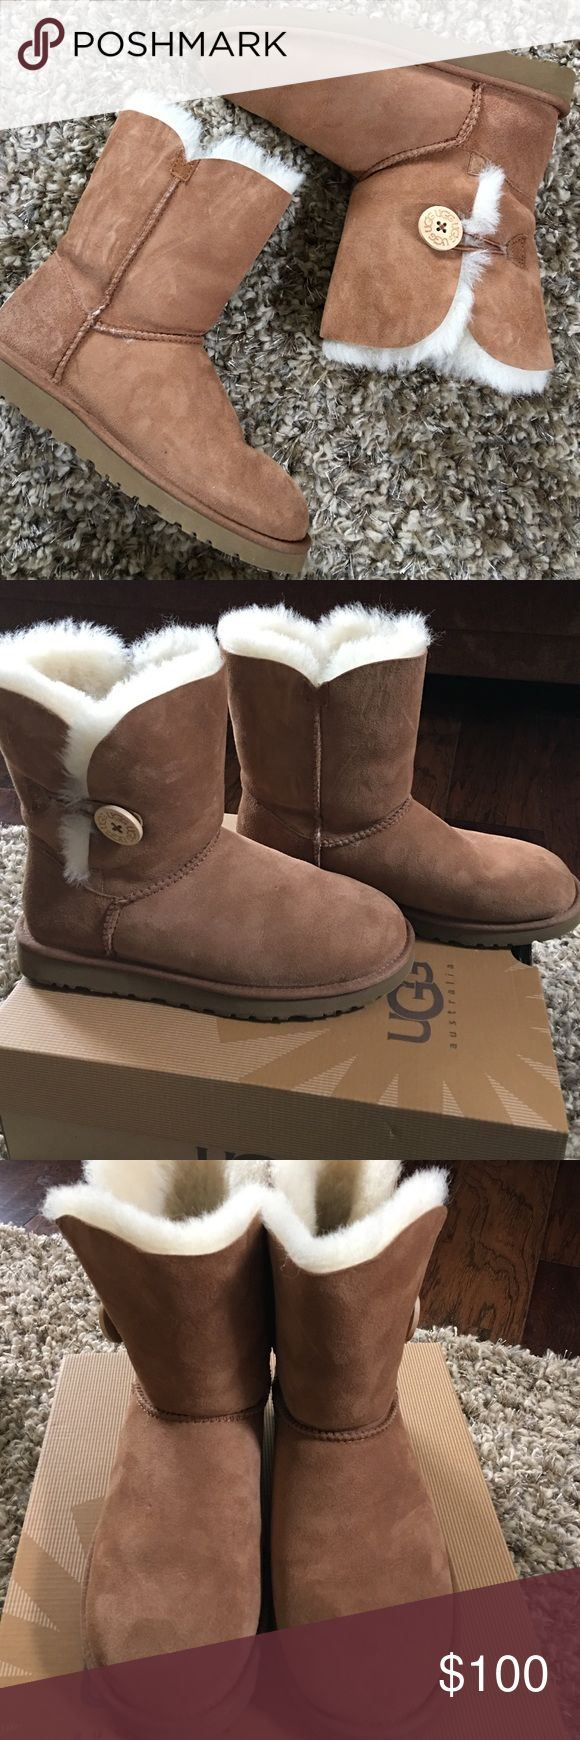 Ugh Bailey Button boots Ugg Bailey Button boot. Excellent condition, wore twice. Too big on me. Size 7. UGG Shoes Winter & Rain Boots